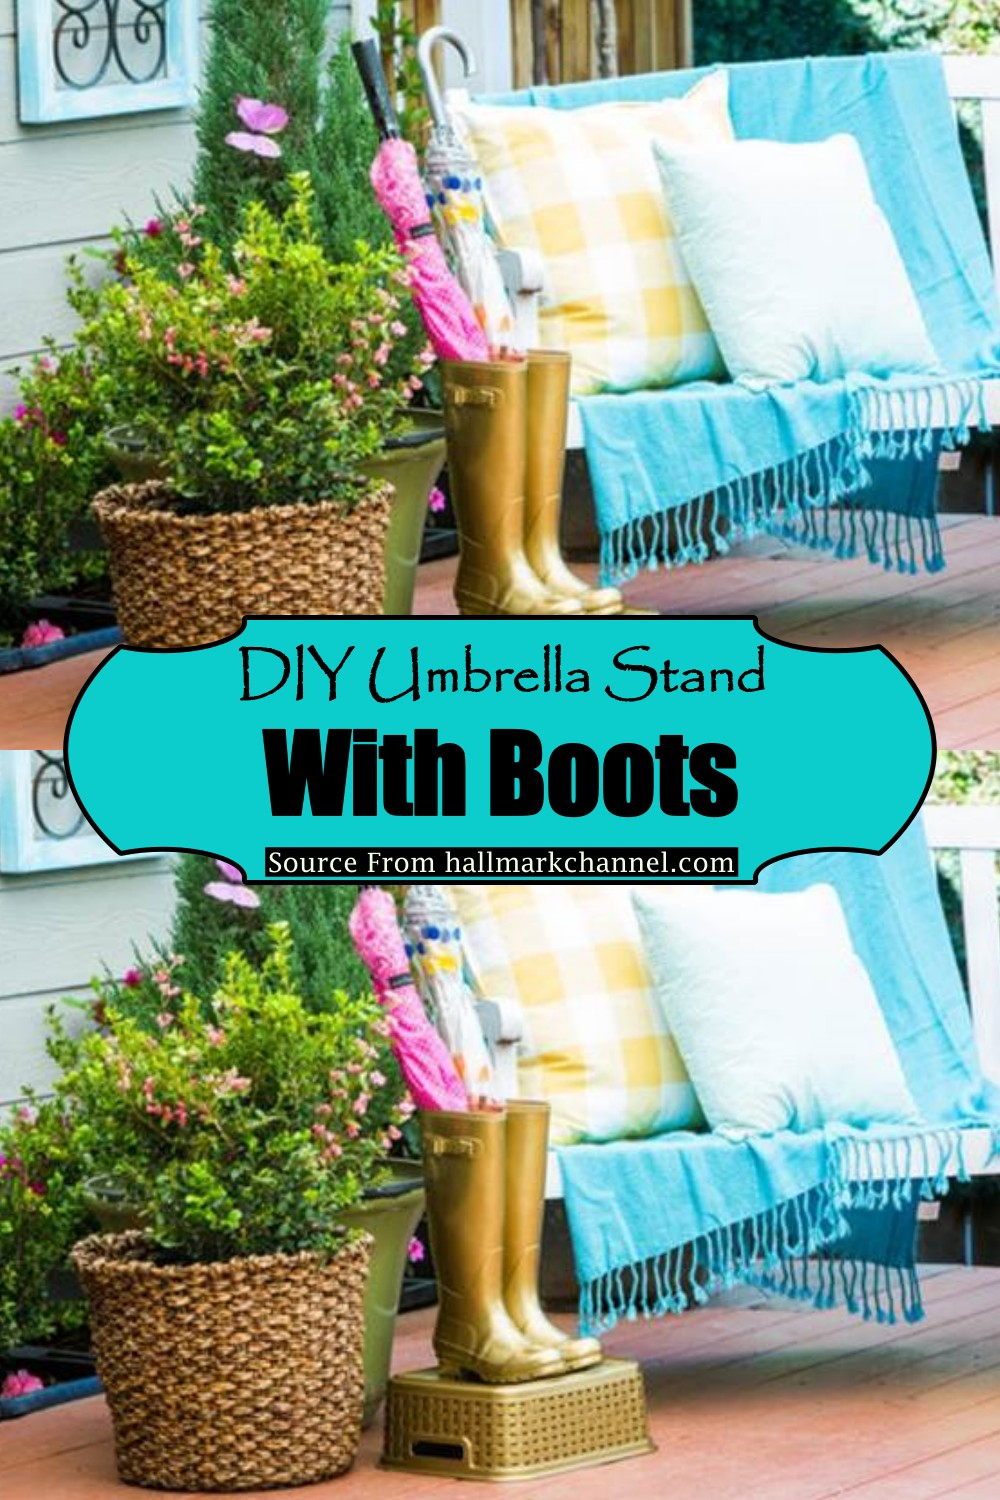 DIY Umbrella Stand With Boots